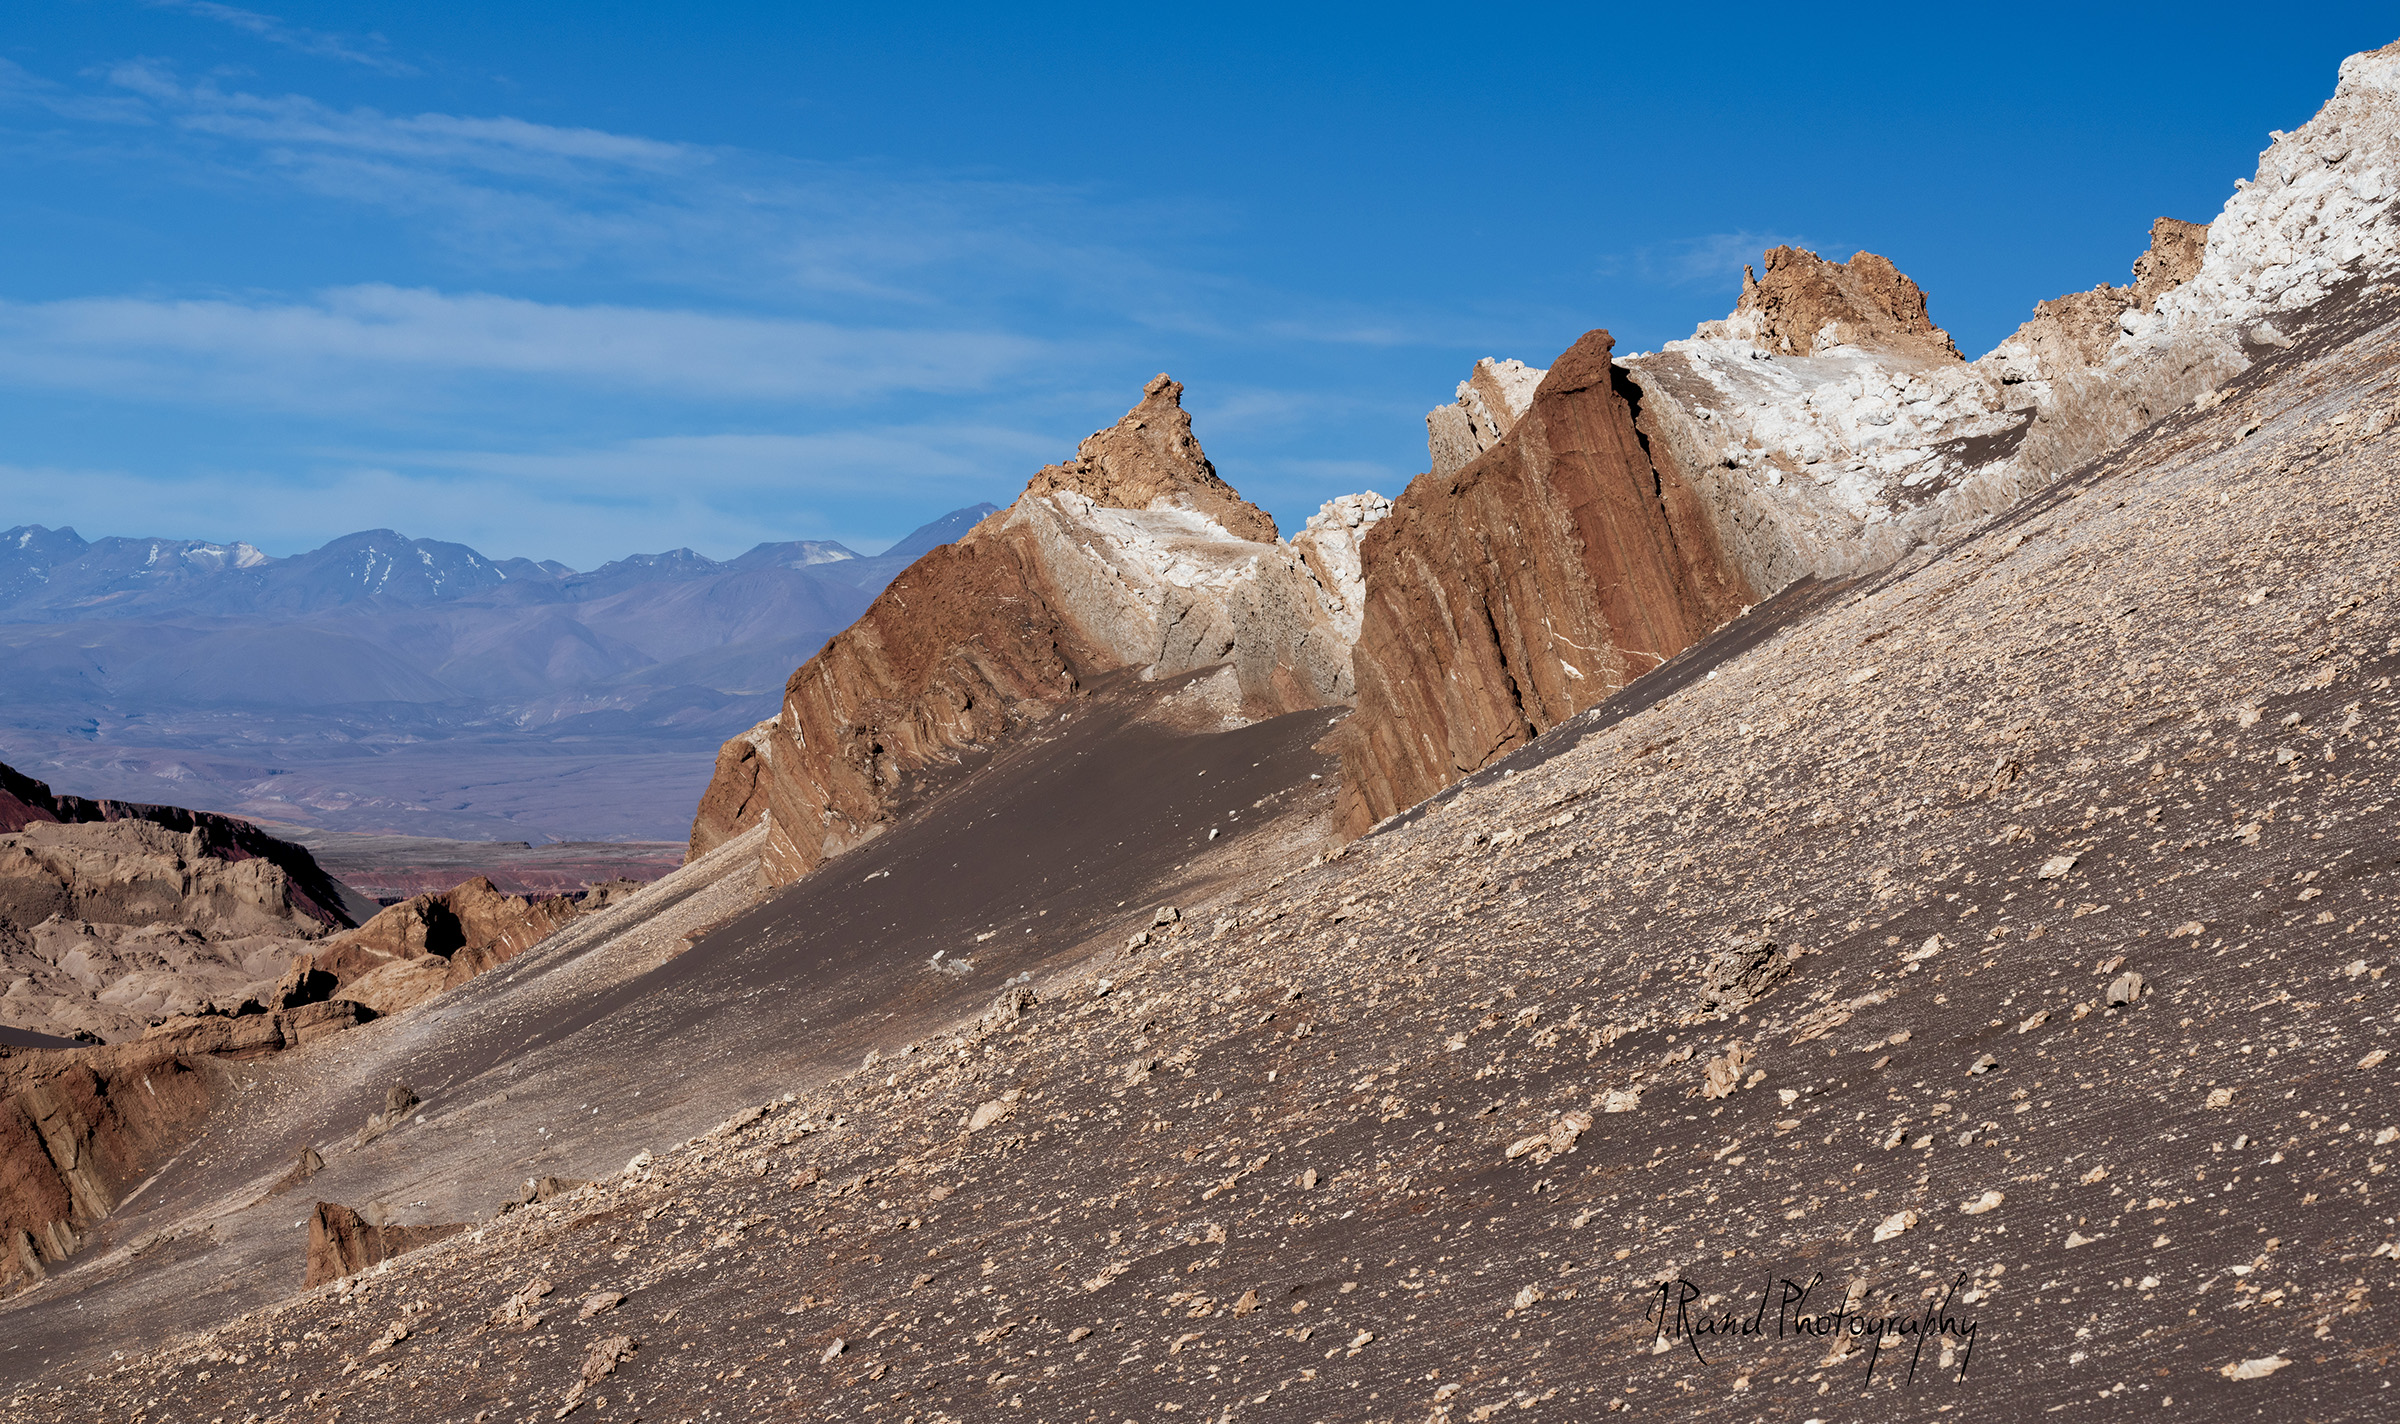 Moon Valley, Atacama Desert, Chile